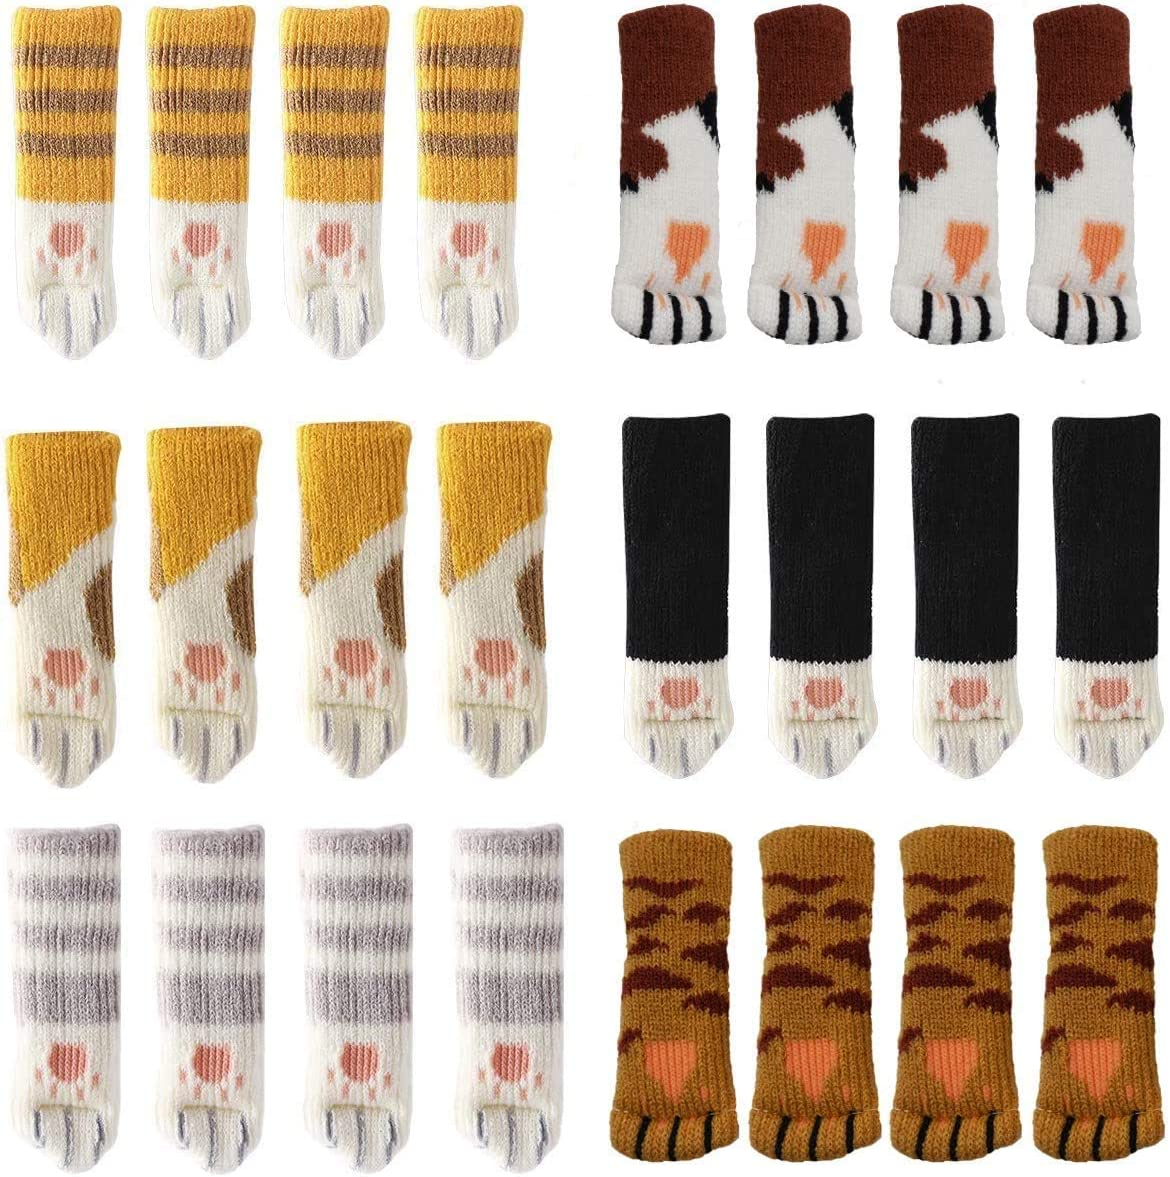 APANDA 24PCS(6 Sets) Chair Socks Fancy Table Leg Pads with Cute Cat Paws Design, Reliable Furniture and Floor Protector, Reduce Noise & Prevent Hardwood Floor from Scratches